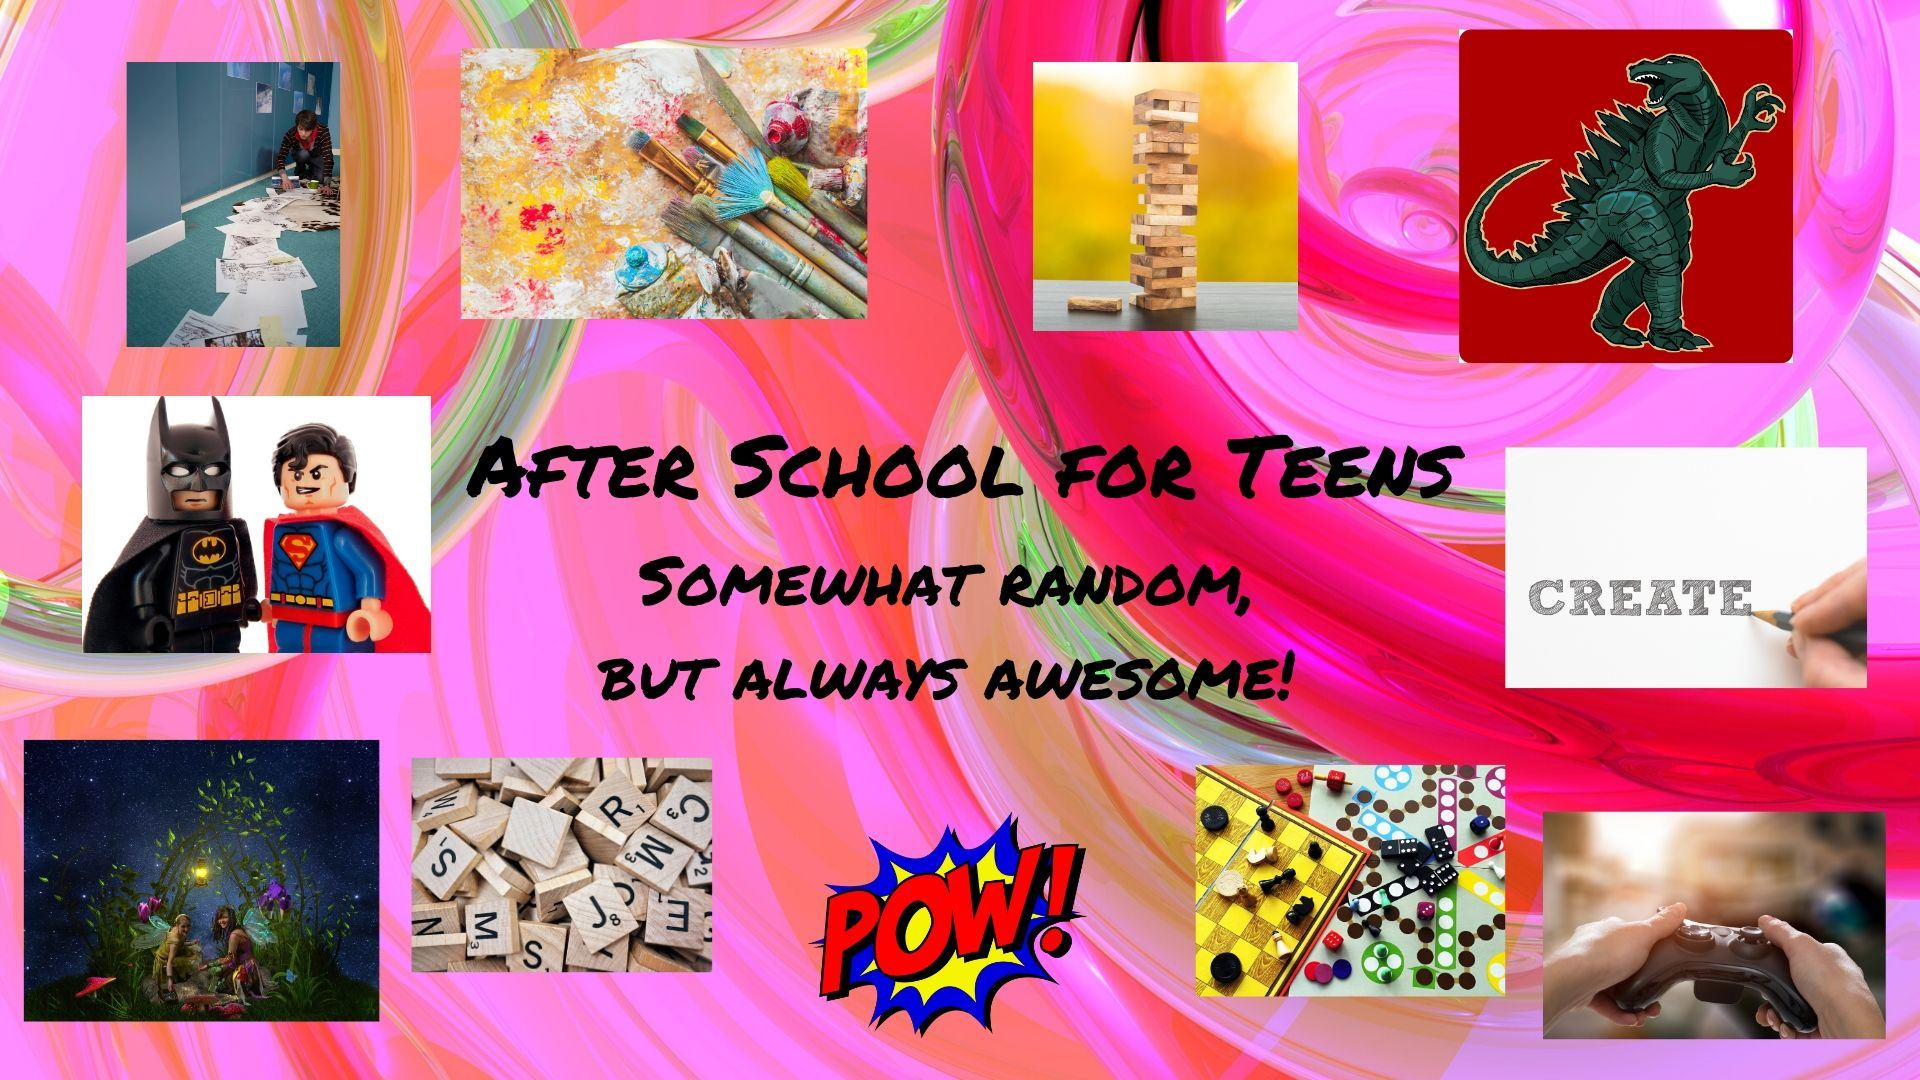 After School for Teens Image